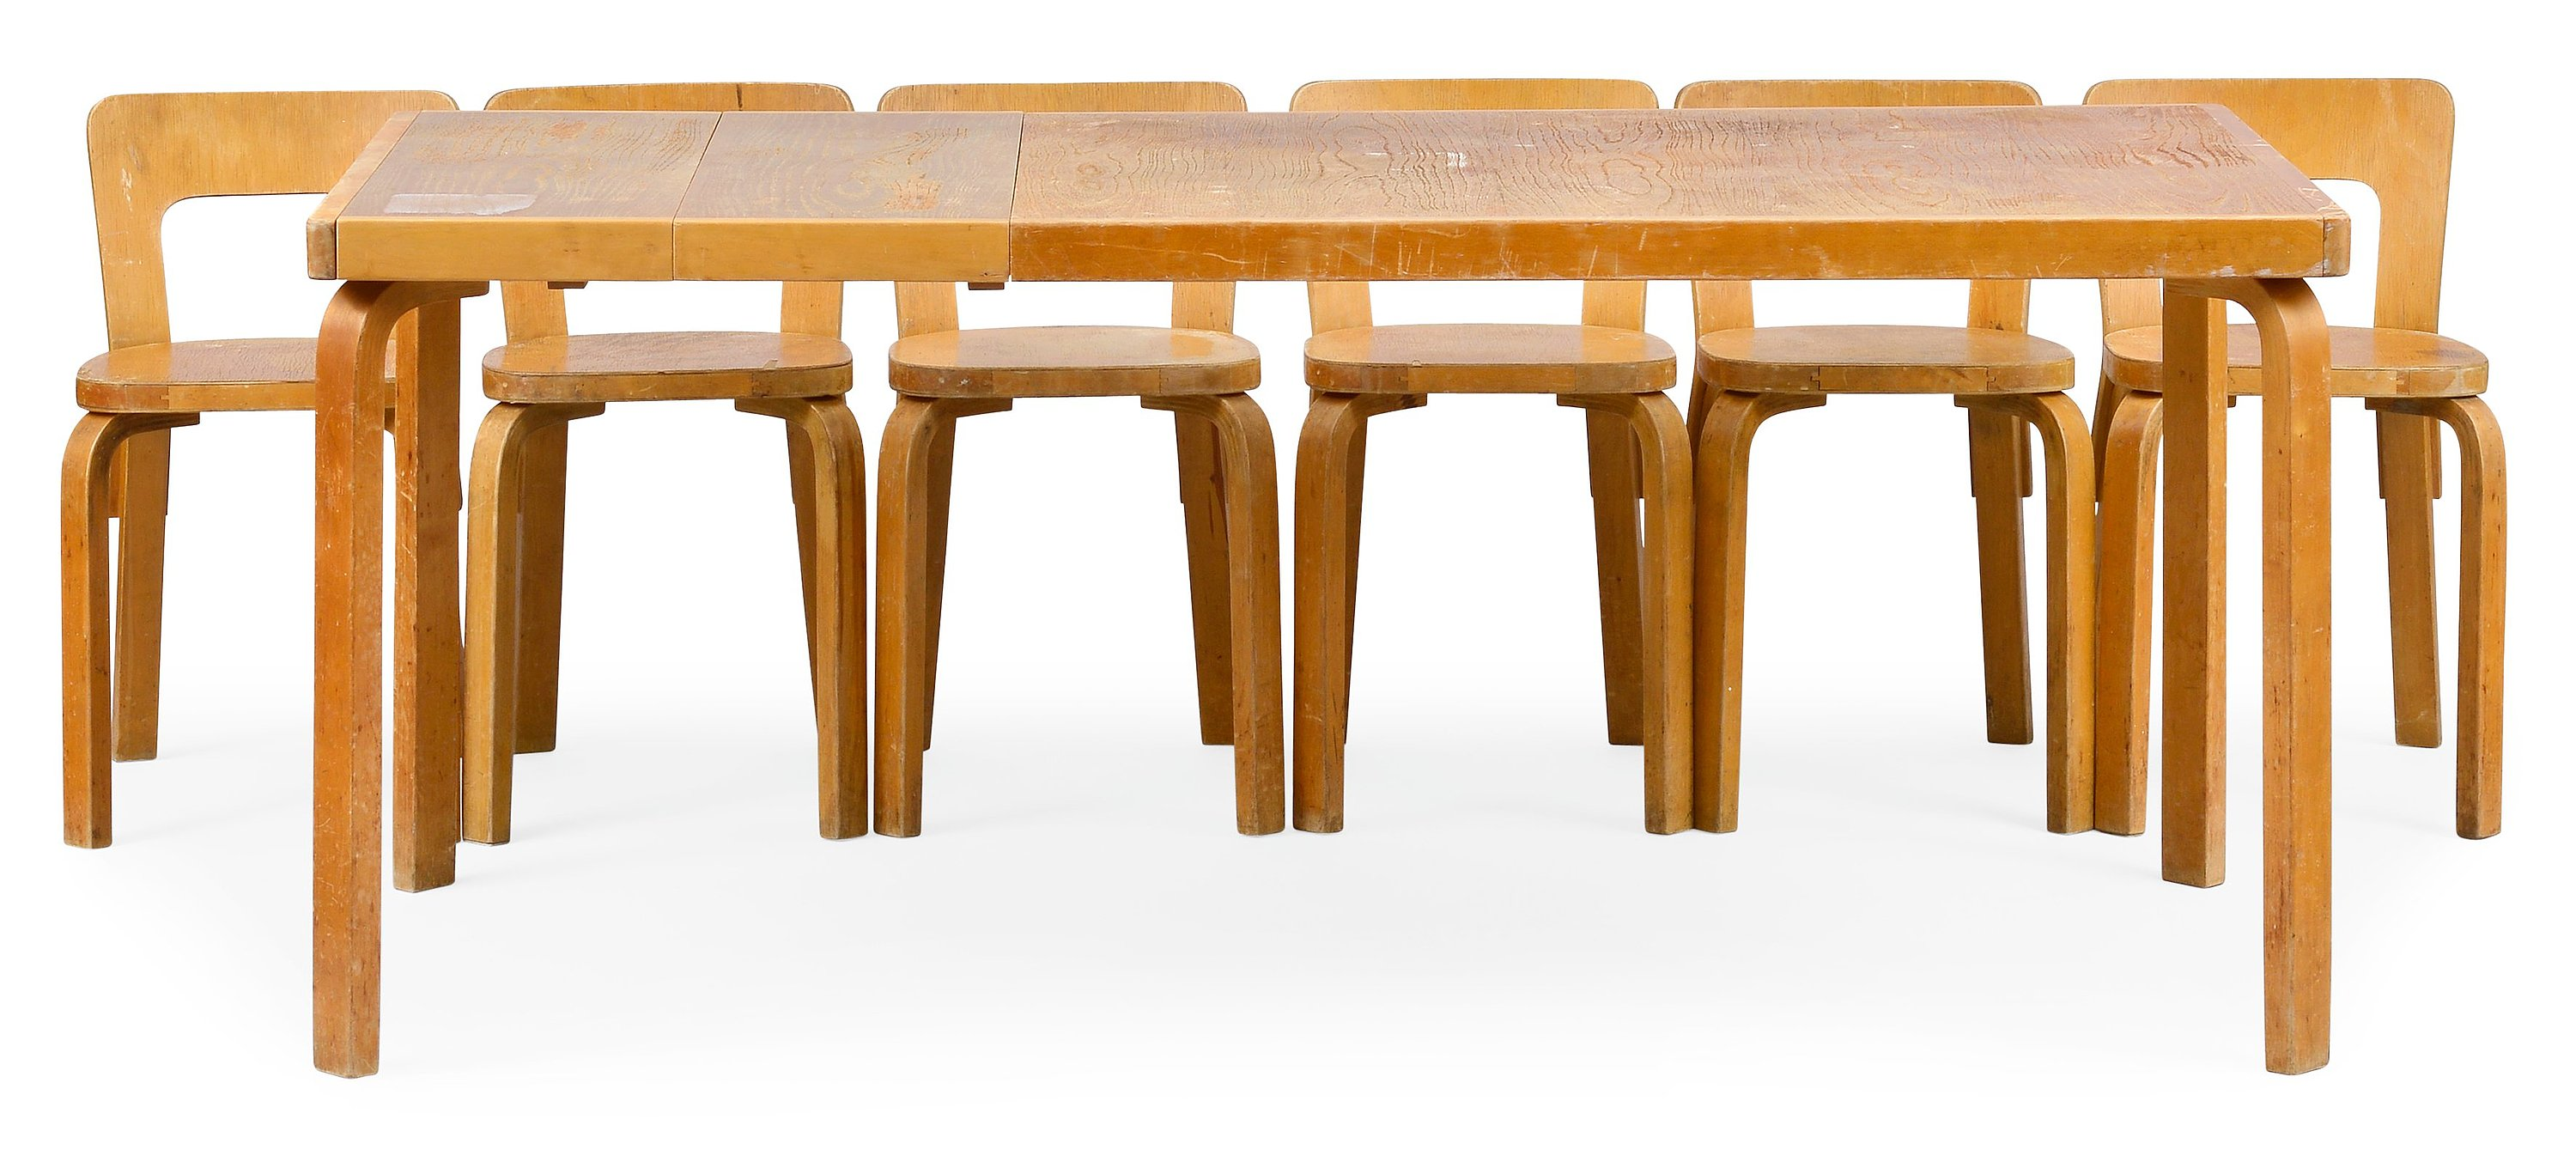 ALVAR AALTO, A SEVEN-PIECE DINING-TABLE SET.